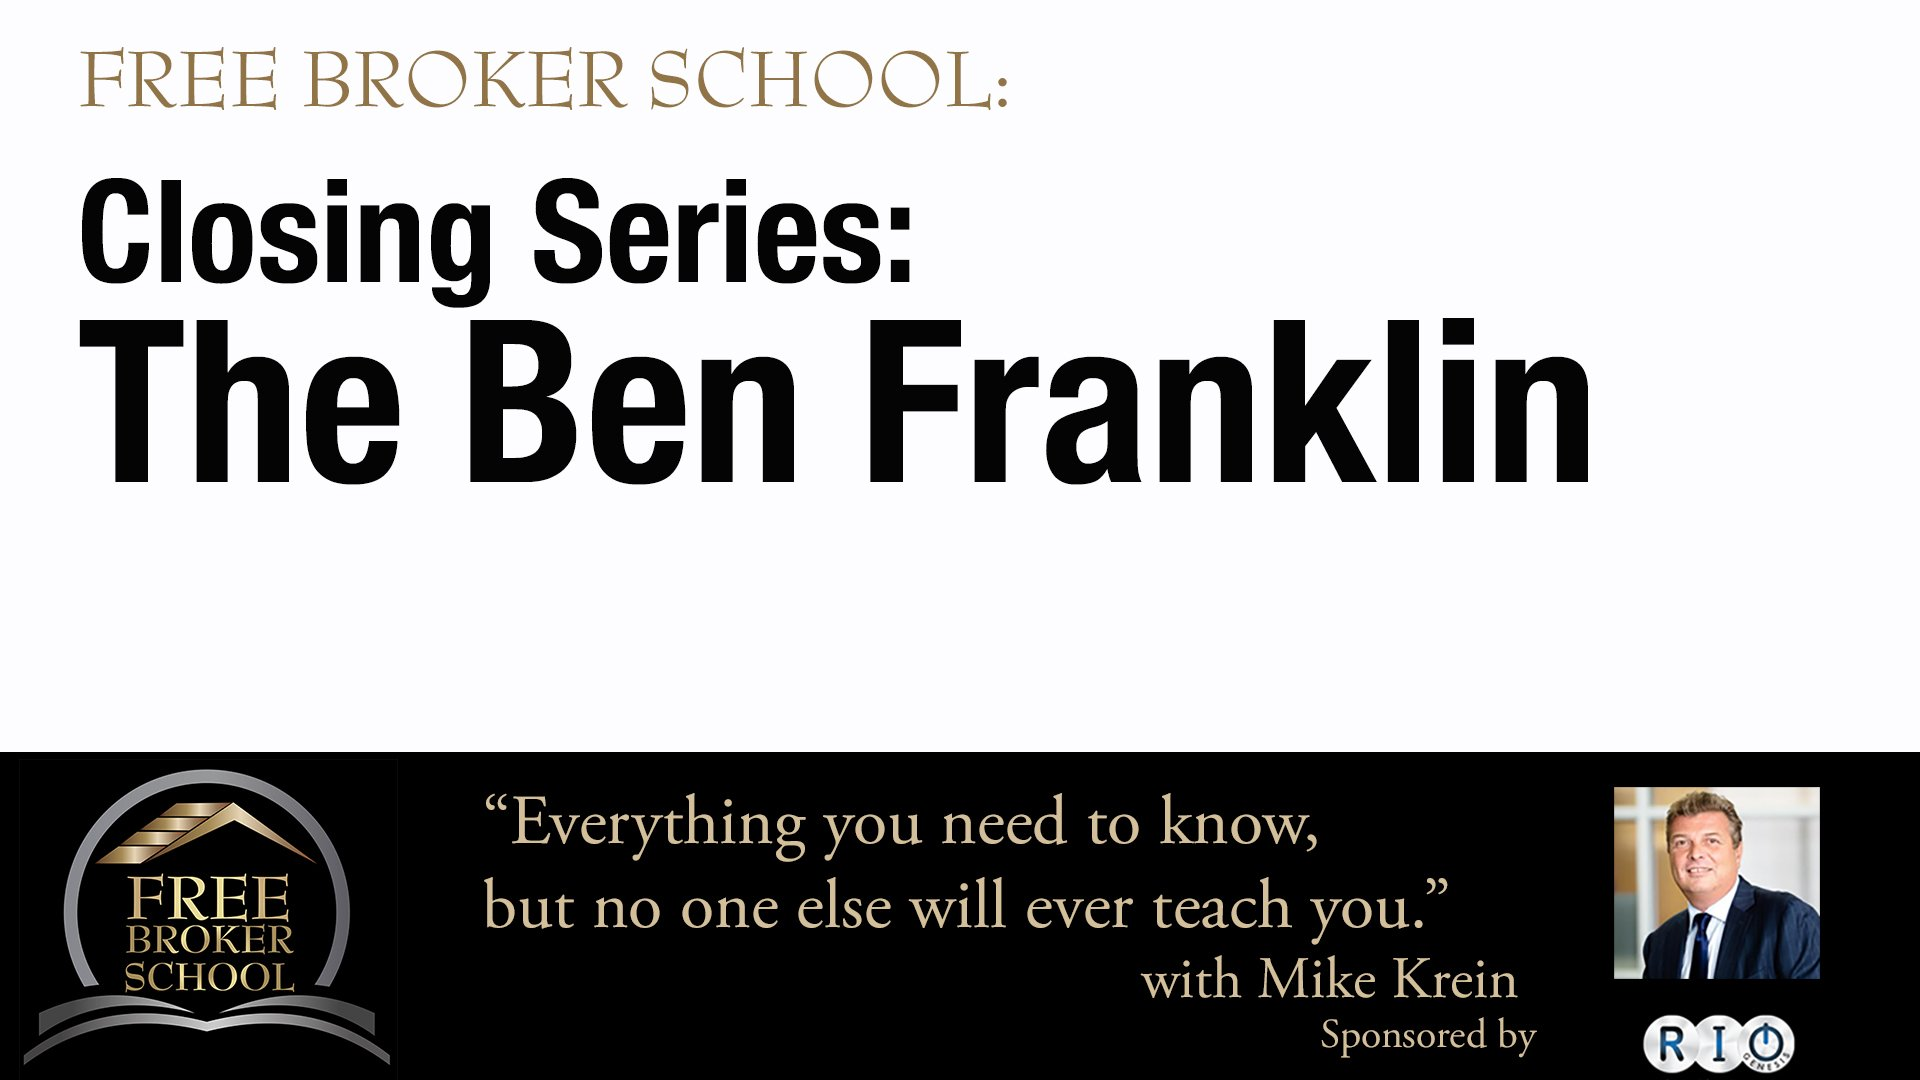 Free Broker School: Closing Series: The Ben Franklin